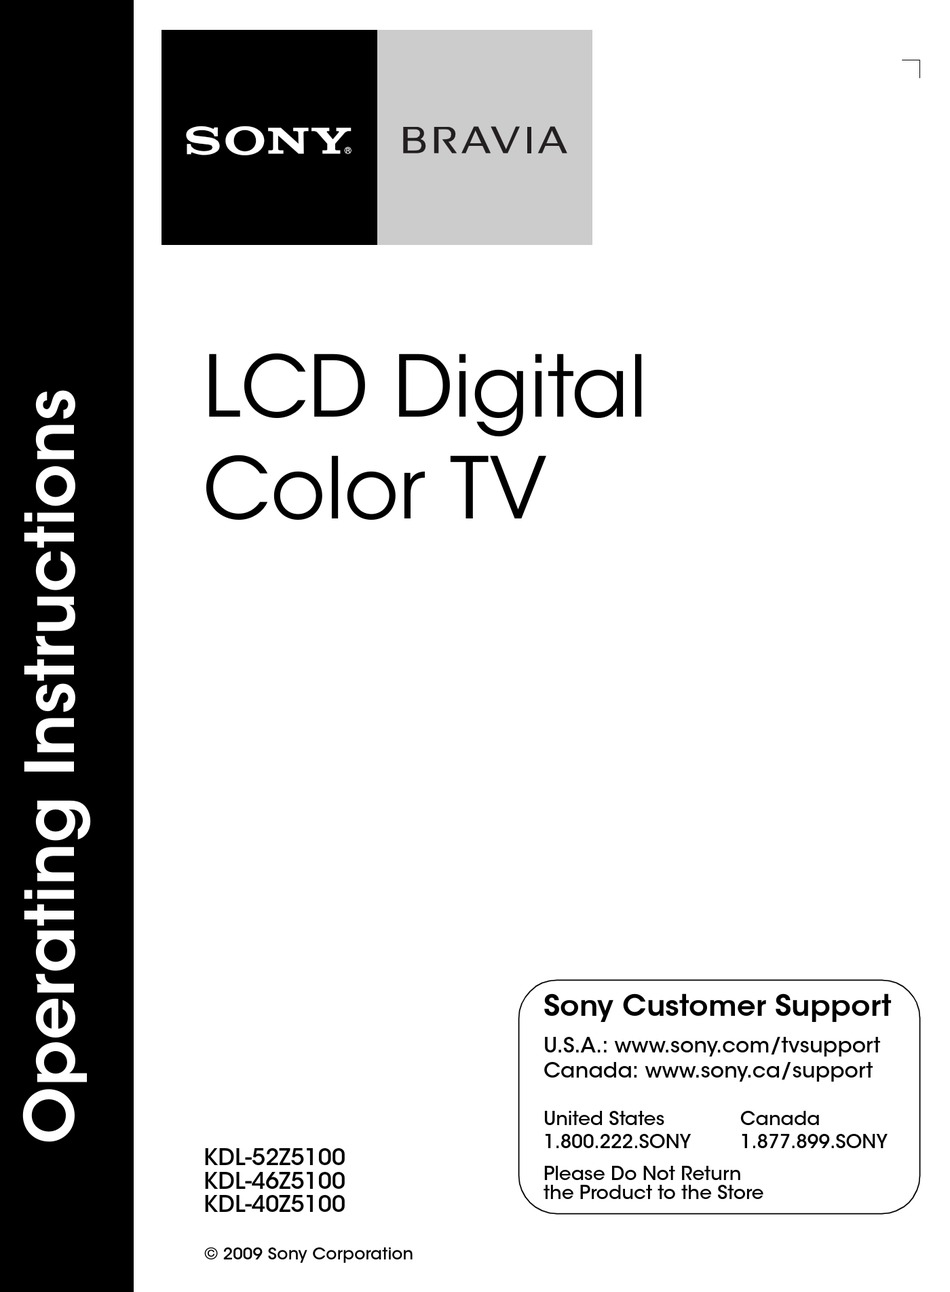 SONY BRAVIA KDL-52Z5100 OPERATING INSTRUCTIONS MANUAL Pdf